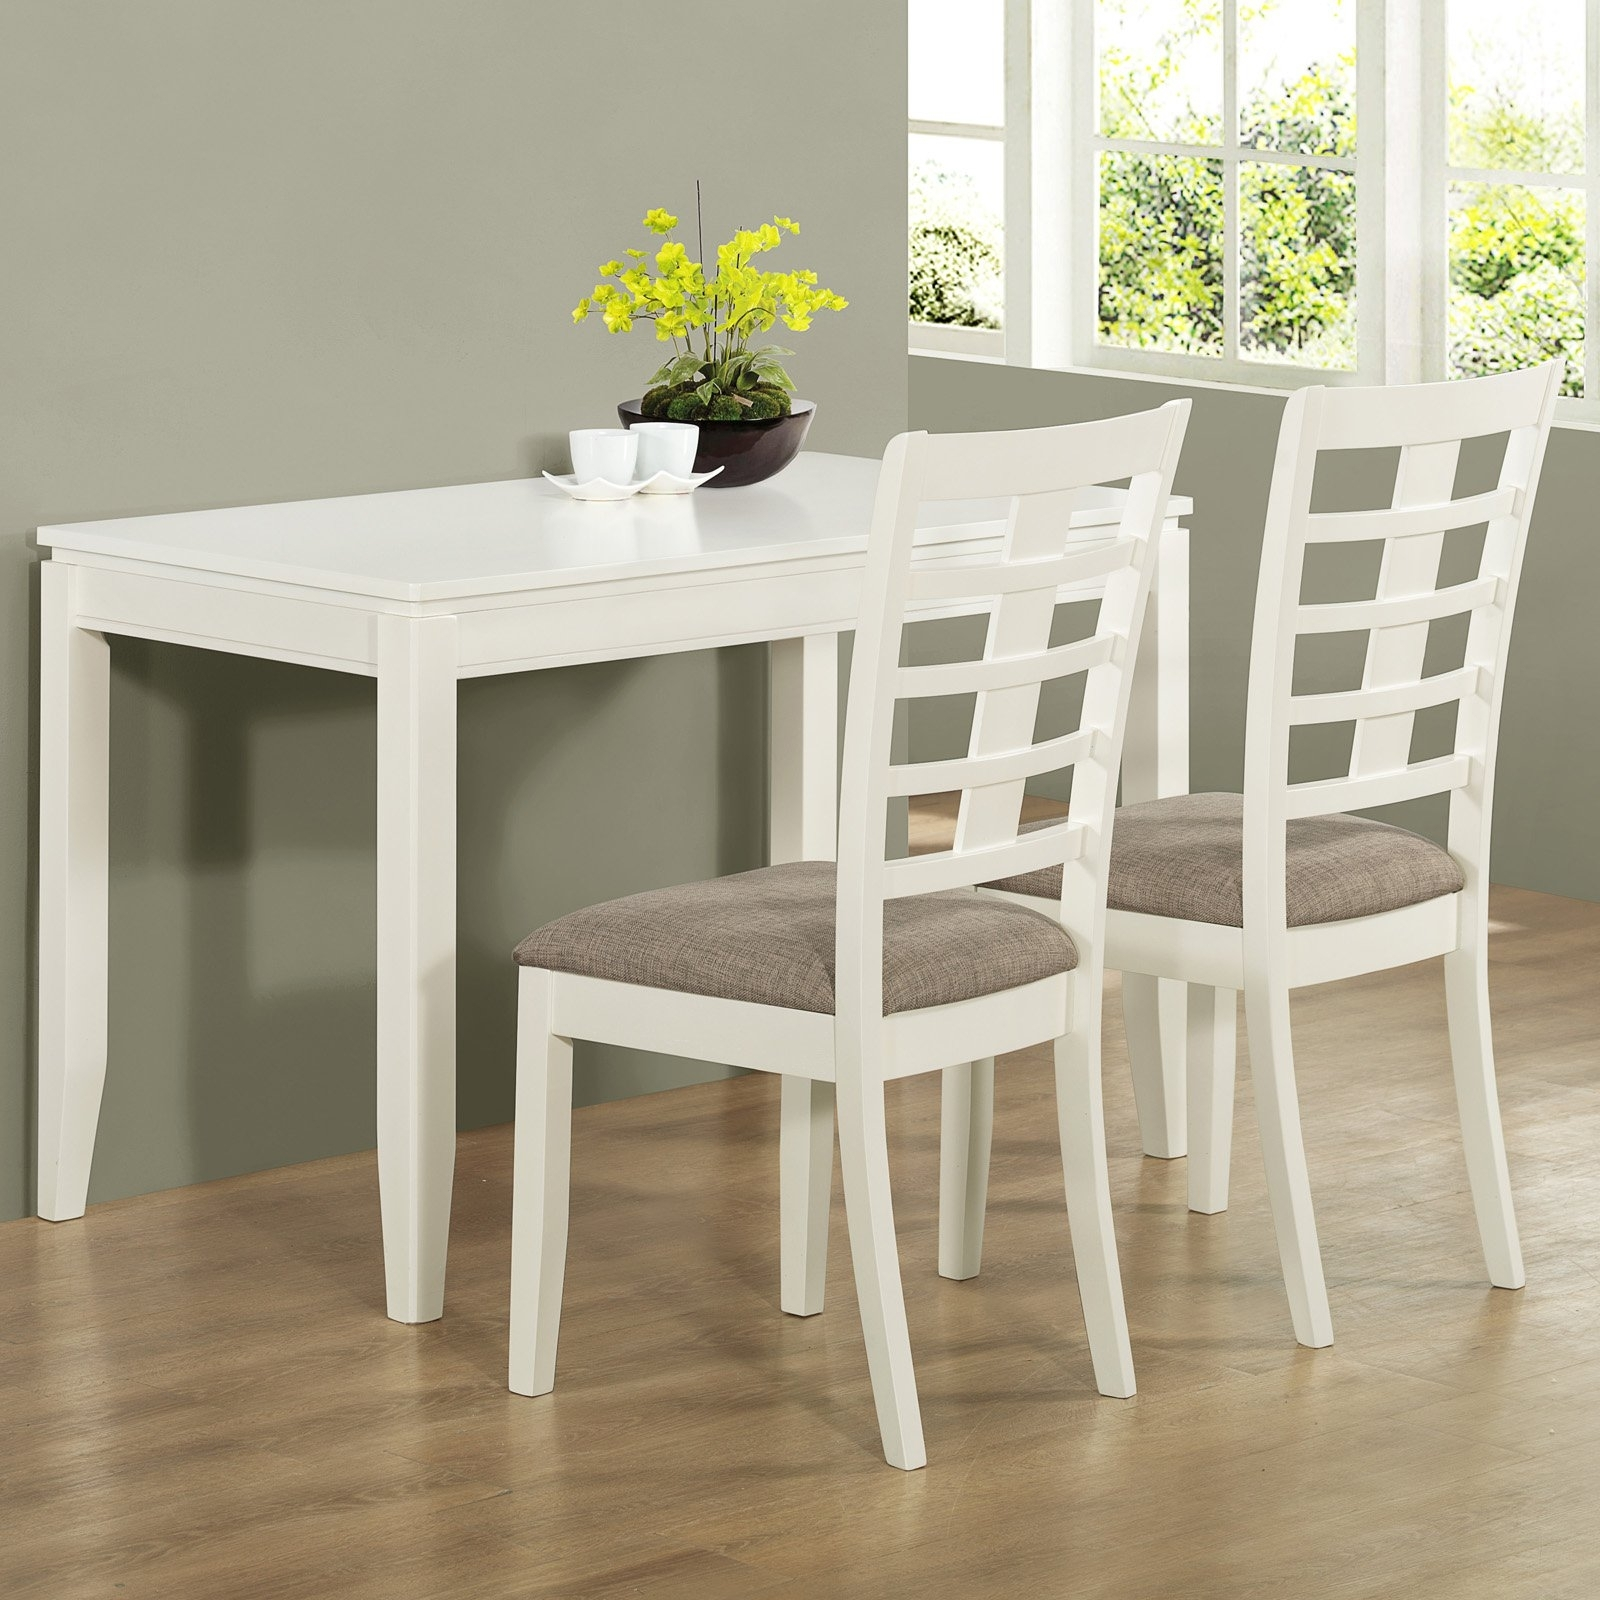 White Melamine Dining Tables Intended For Trendy White Melamine Finished Mahogany Wood Dining Set With Grey Velvet (View 10 of 25)